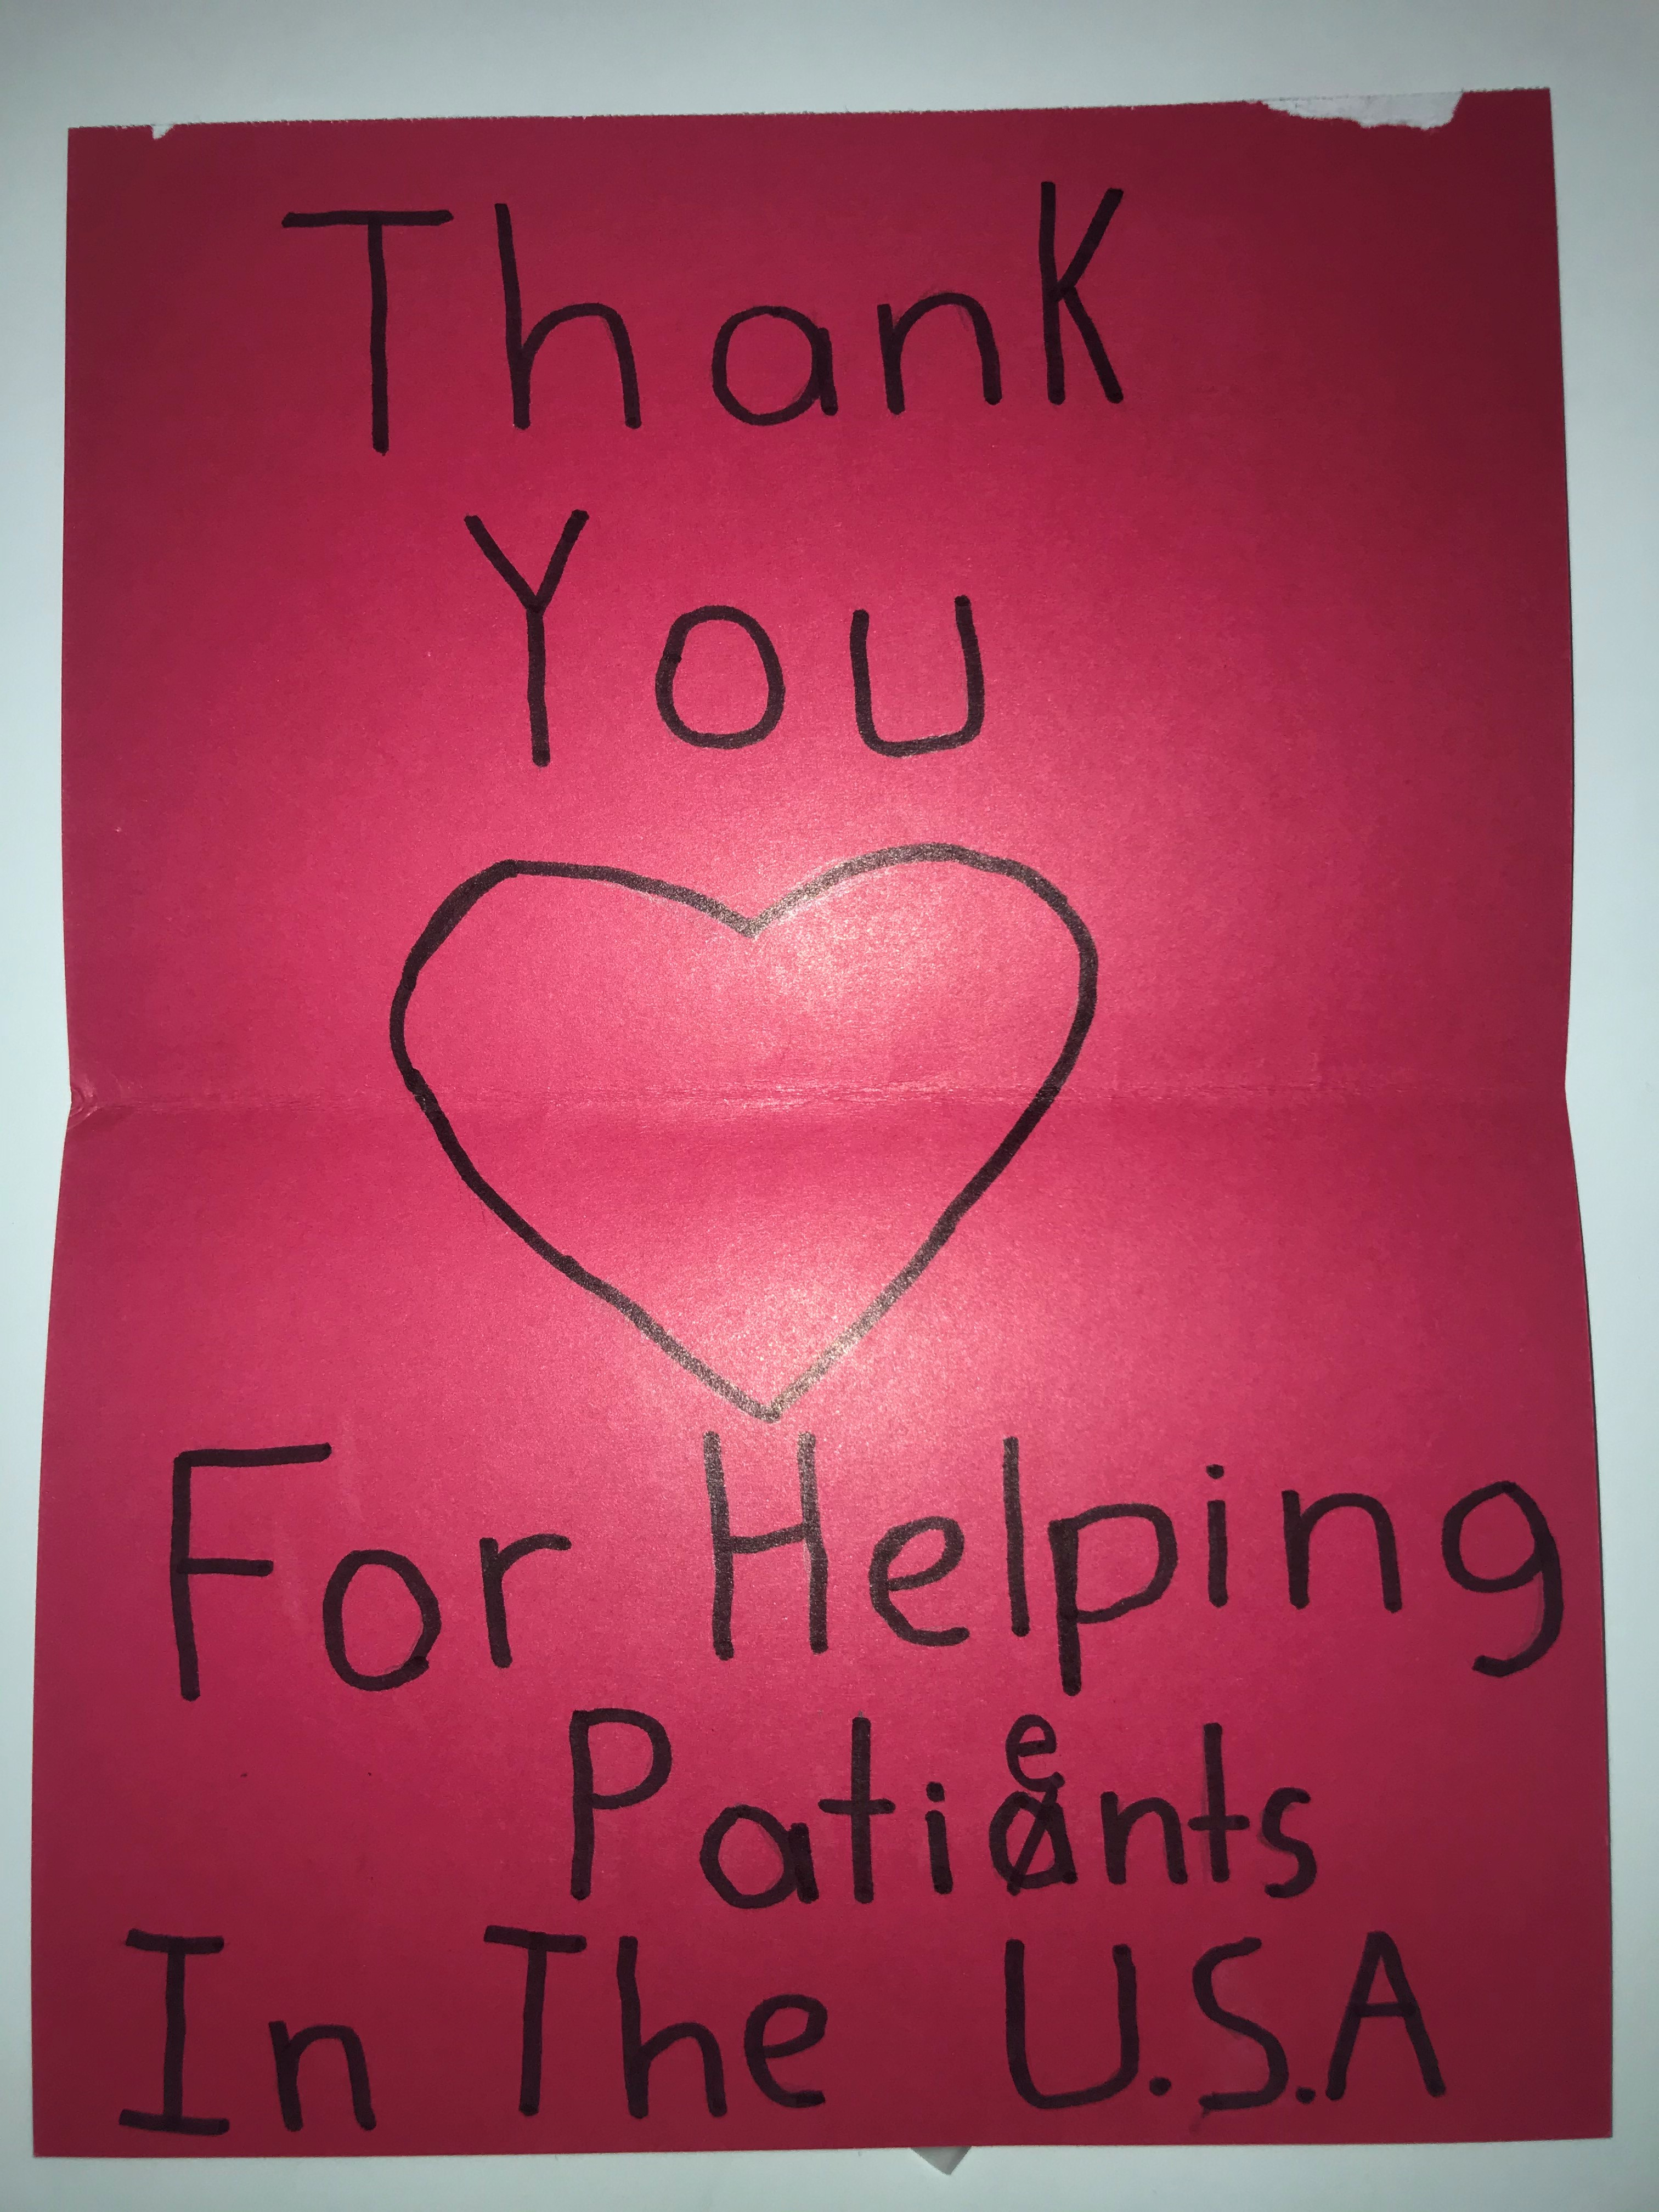 Thank you for helping patients in the U.S.A.